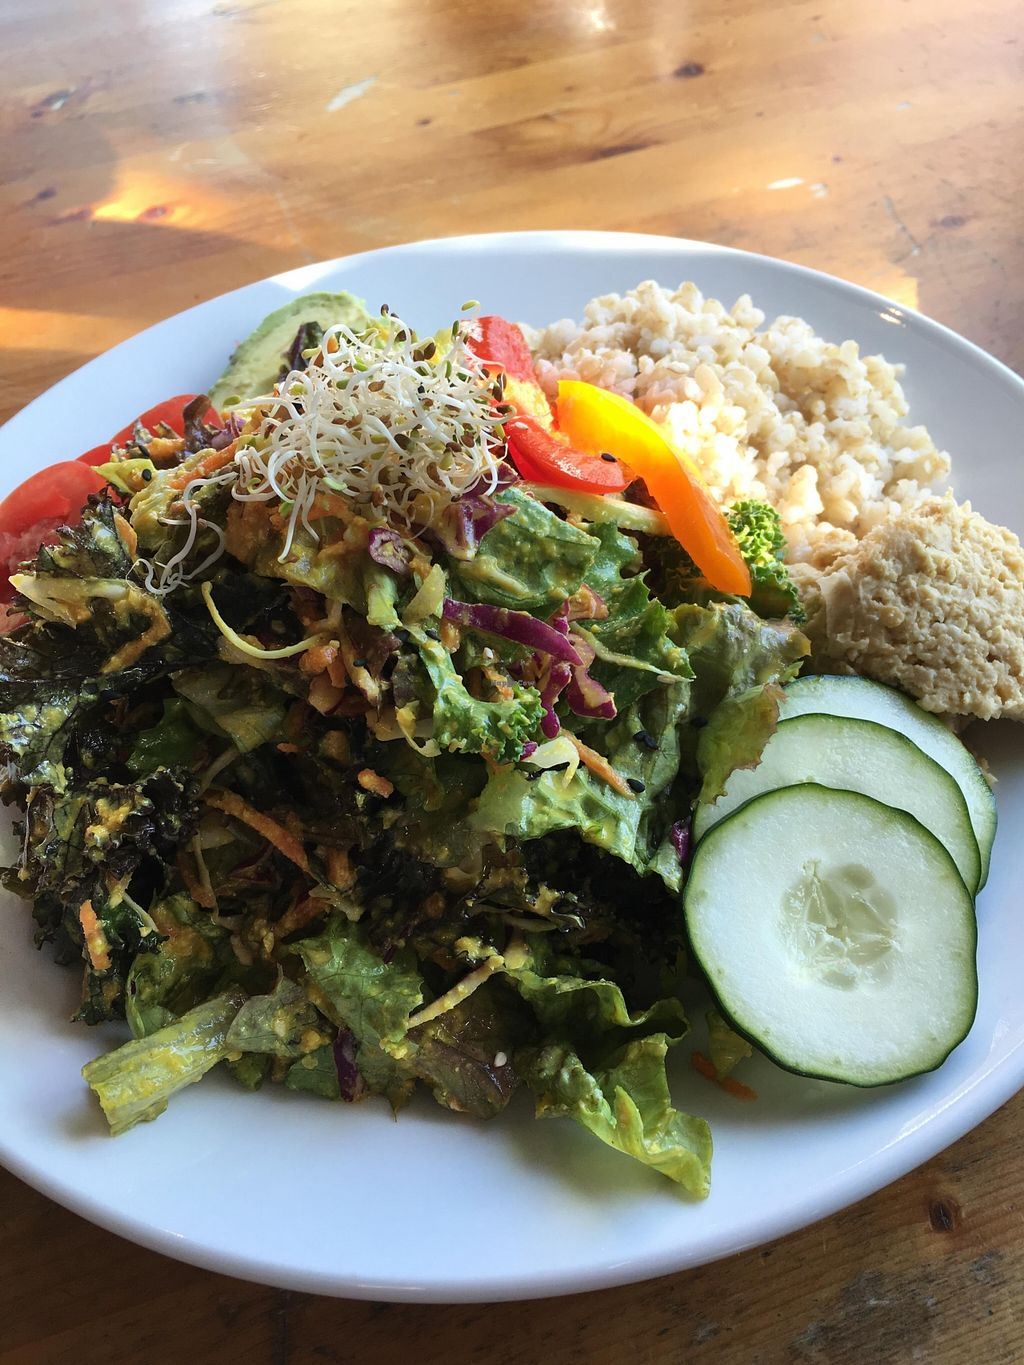 """Photo of Eternal Abundance Organic Market & Cafe  by <a href=""""/members/profile/vegan%20frog"""">vegan frog</a> <br/>Super salad <br/> April 9, 2016  - <a href='/contact/abuse/image/5579/143675'>Report</a>"""